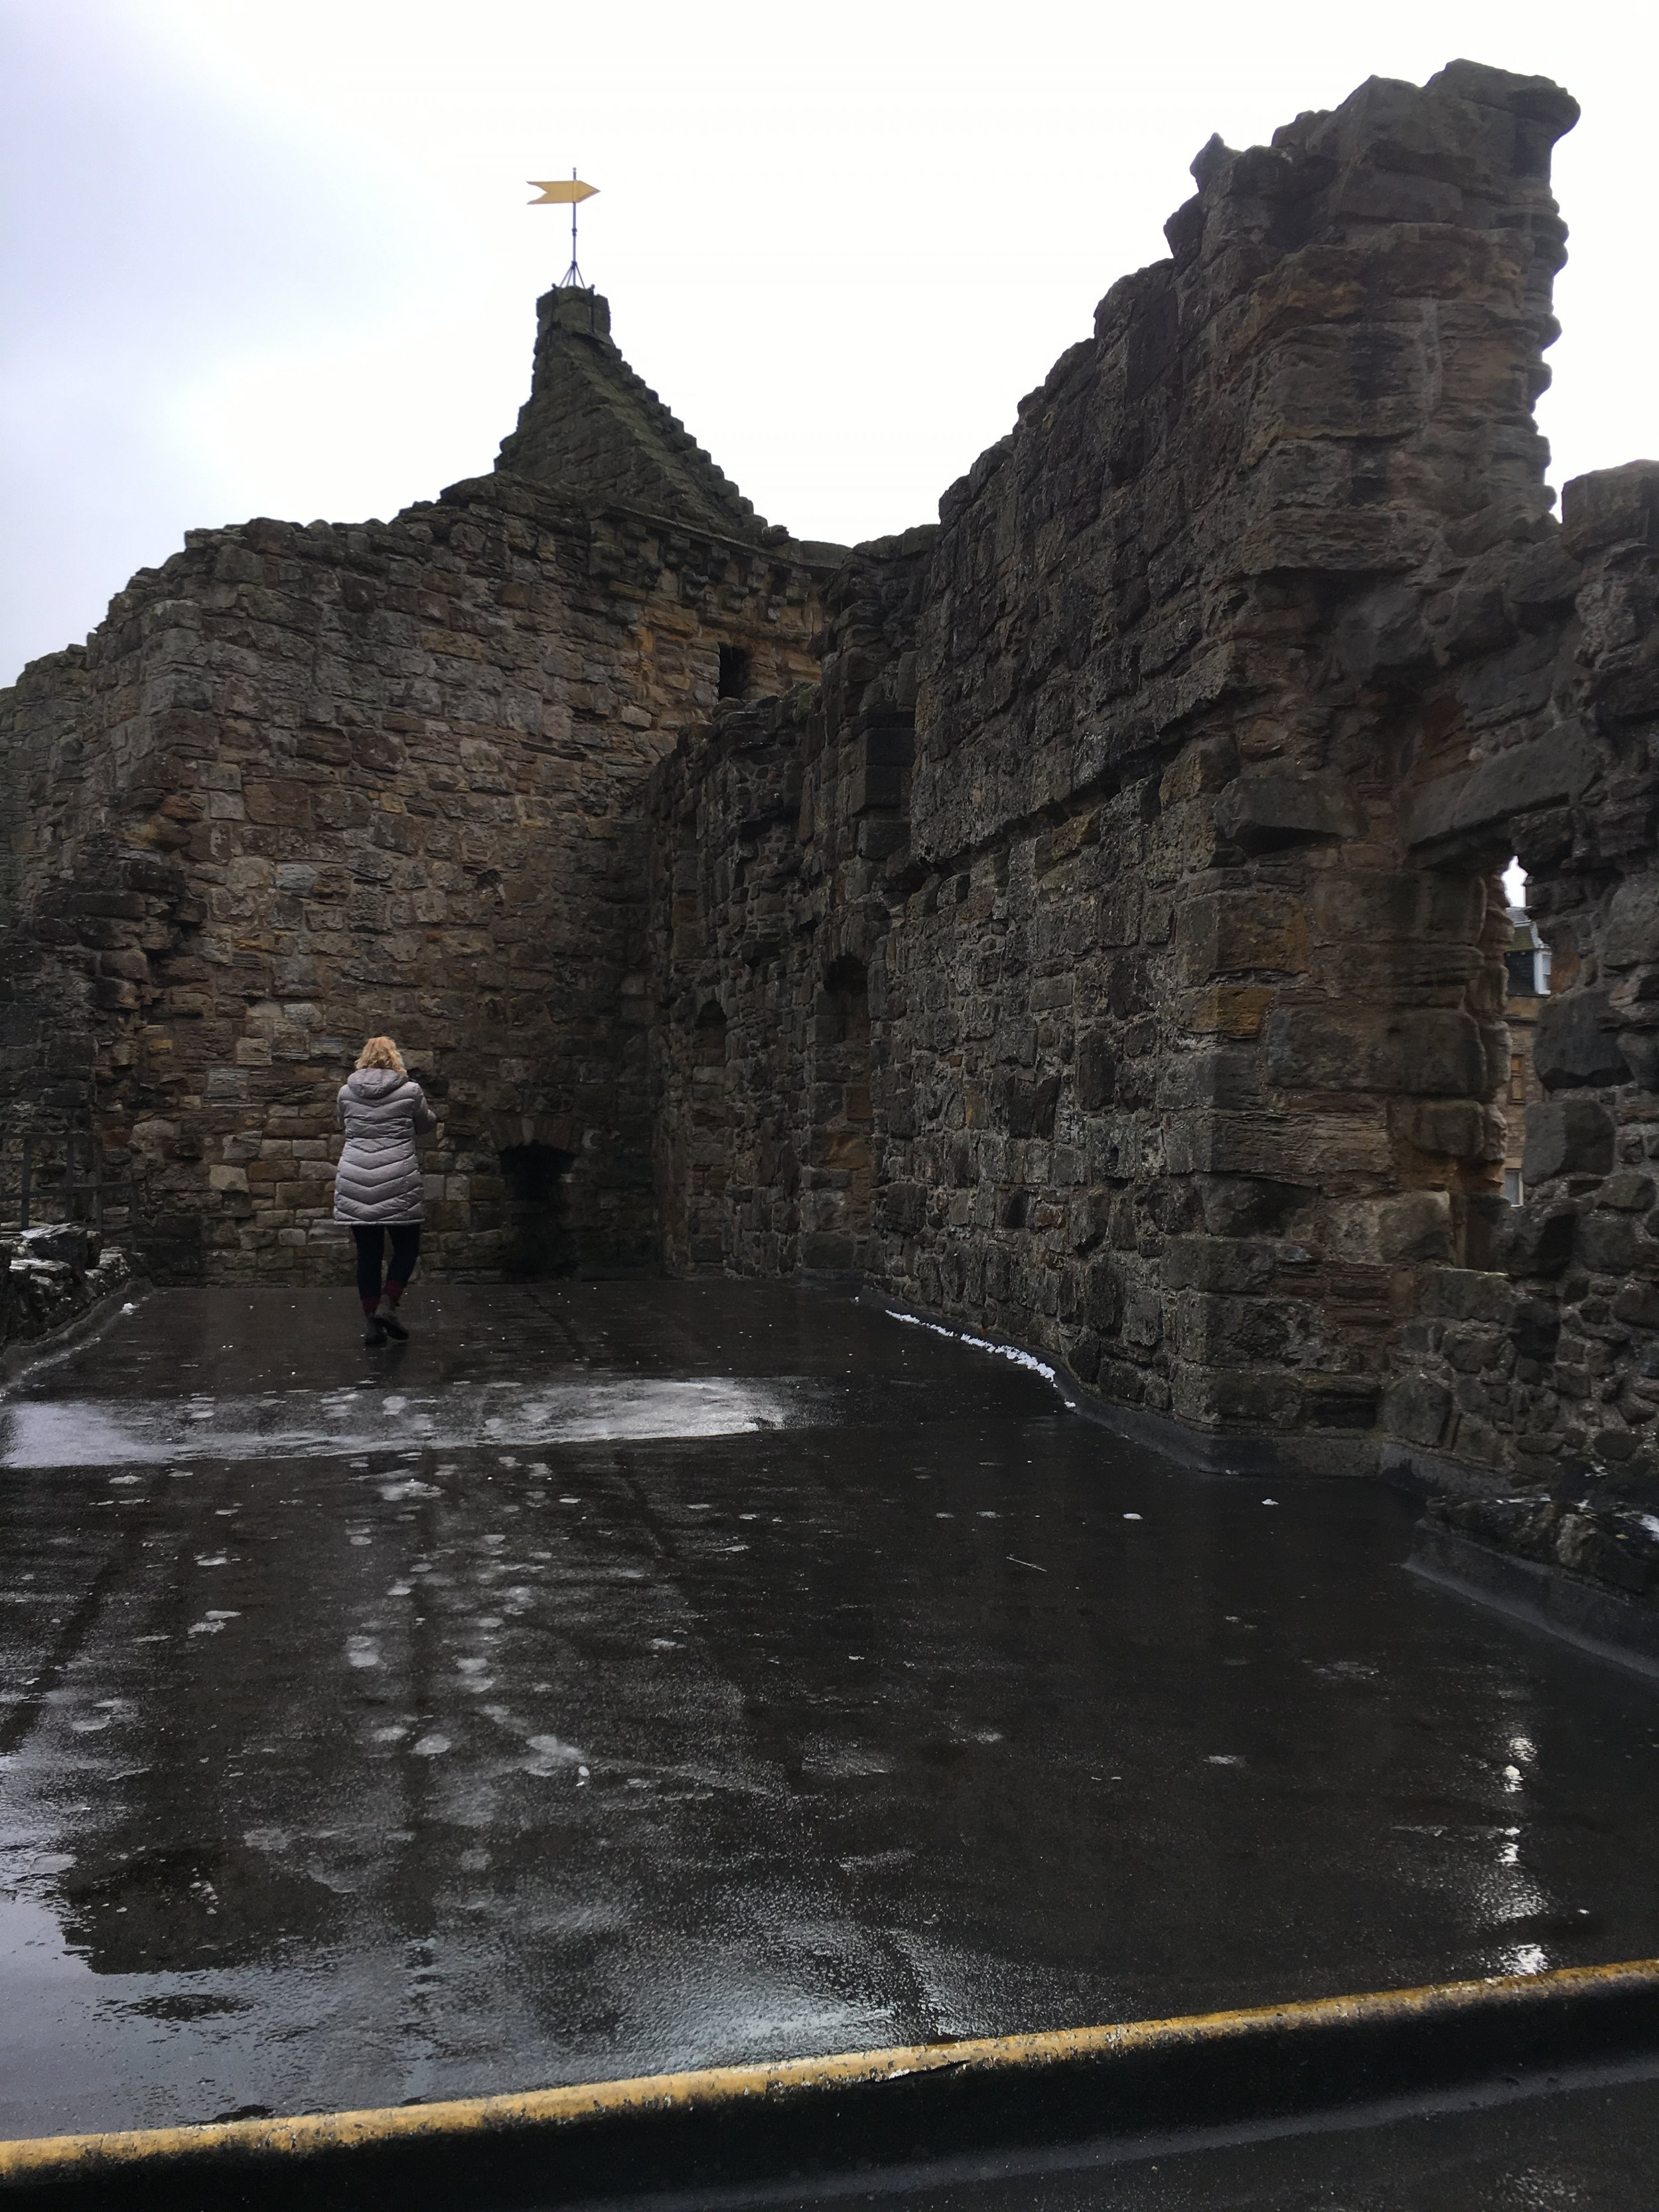 We did get to go into St. Andrews Castle.